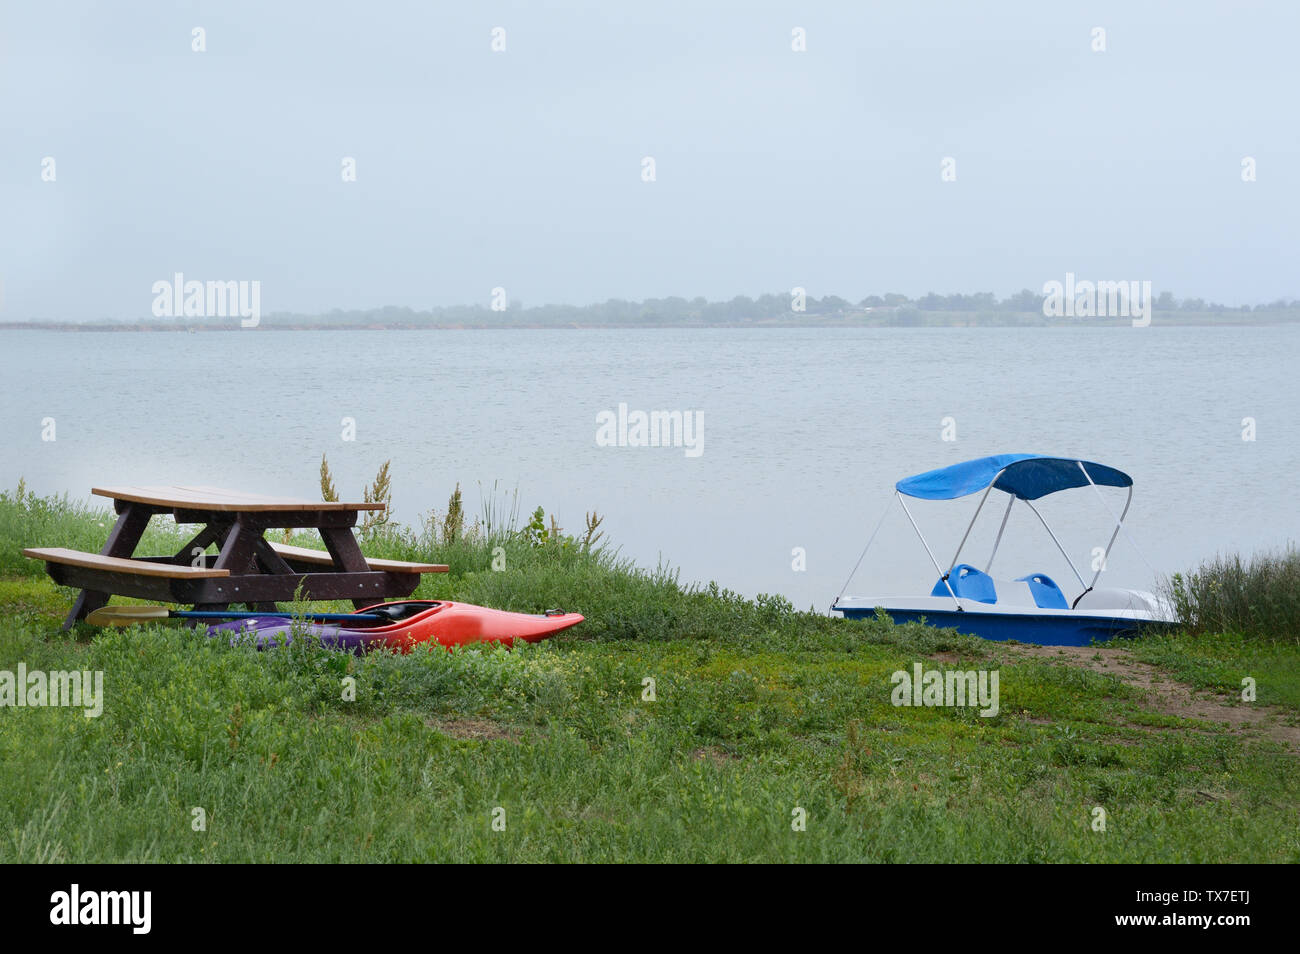 Kayak and boat grounded on grassy lake shore near picnic table during rain storm at lake - Stock Image